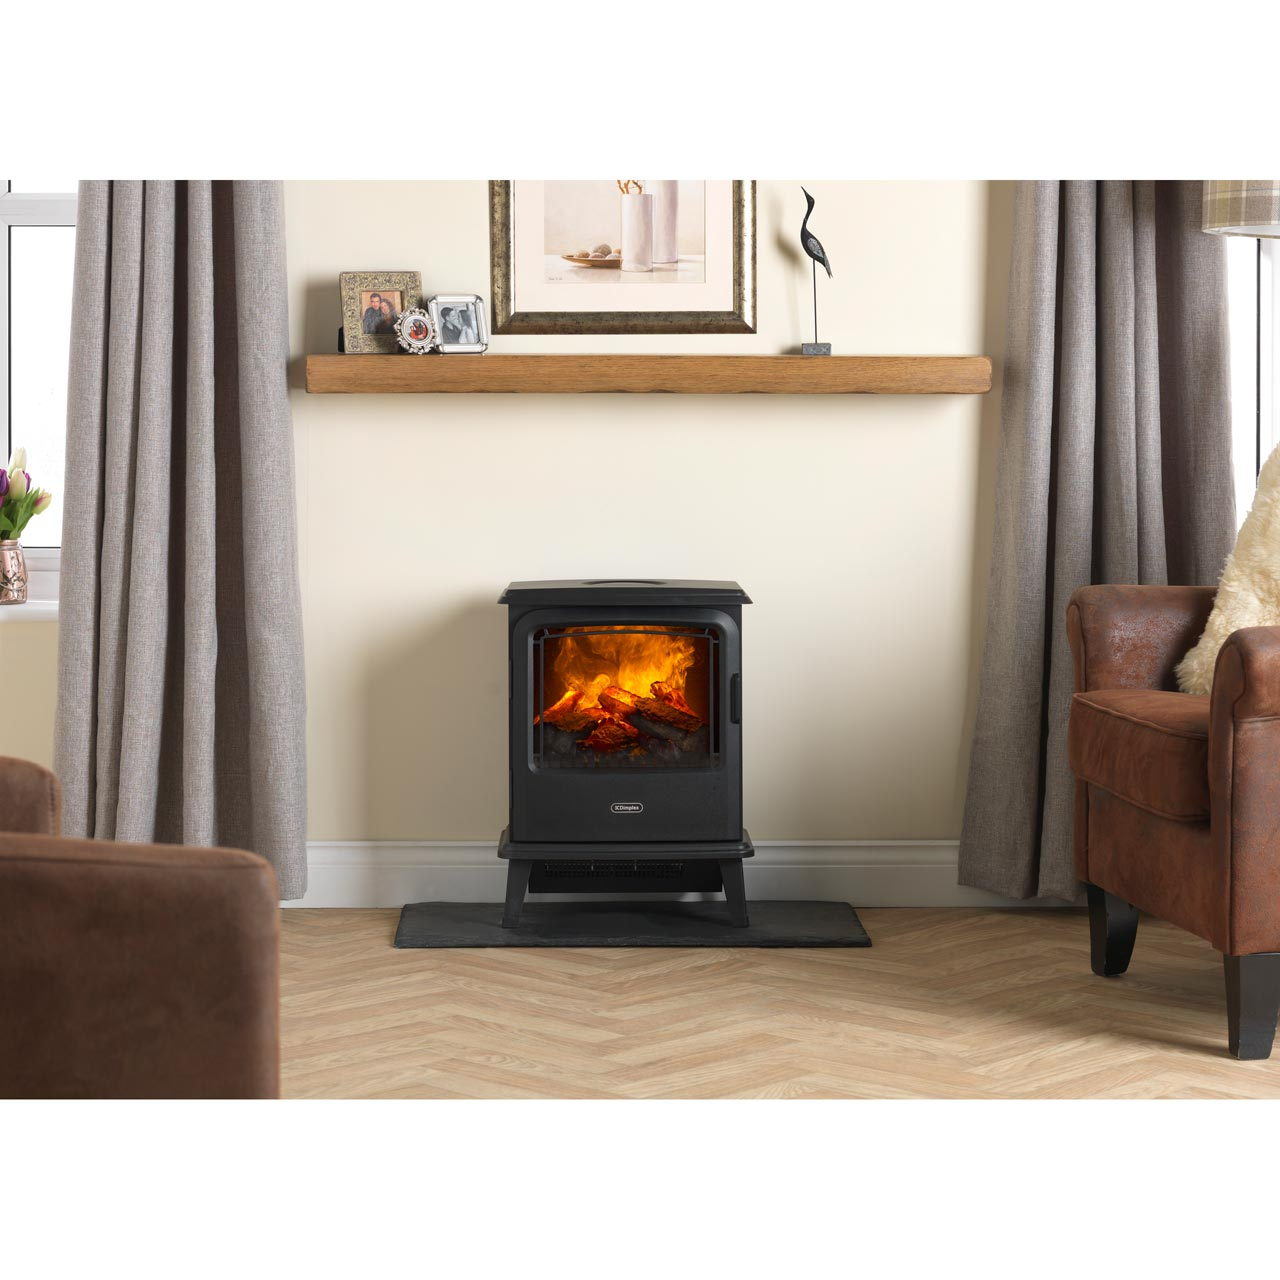 Fabulous Dimplex Bayport Byp20 Log Effect Electric Stove With Remote Control Black Home Interior And Landscaping Mentranervesignezvosmurscom